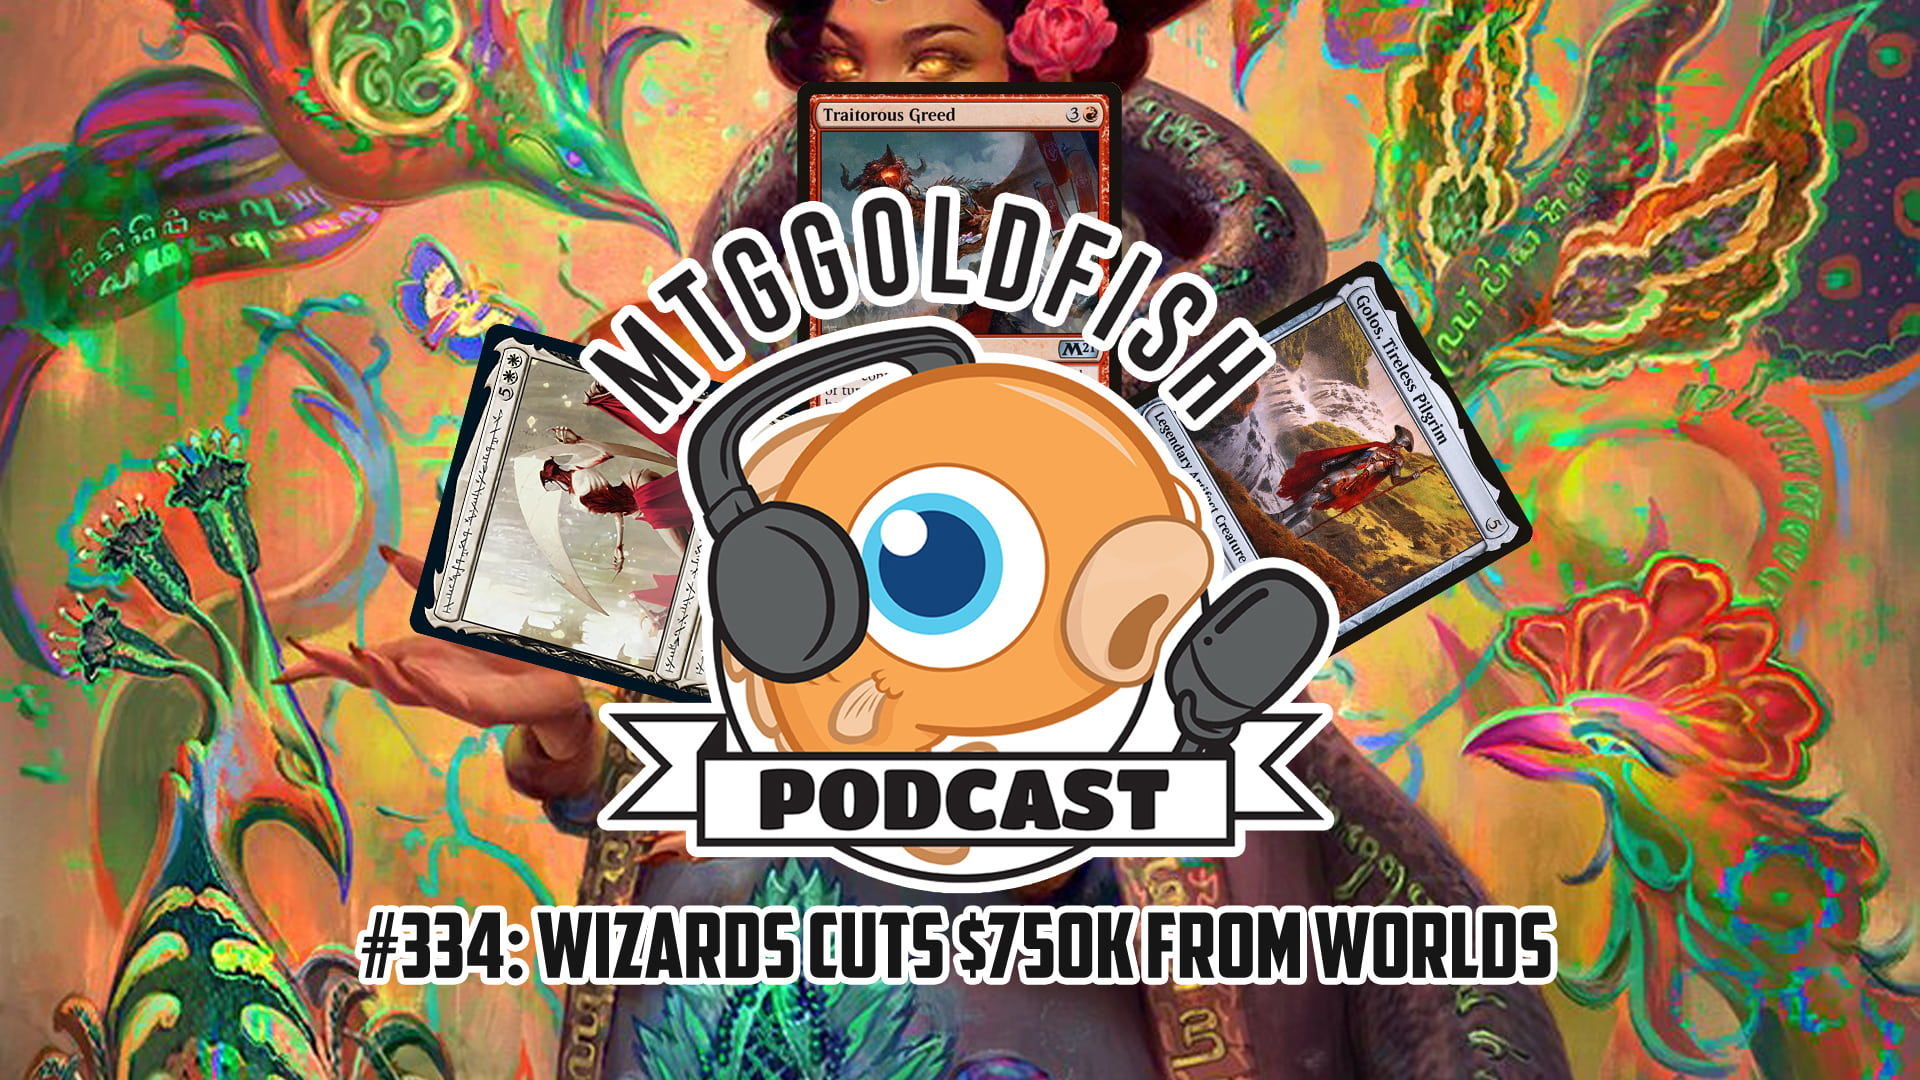 Image for Podcast 334: Wizards Cuts $750K From Worlds